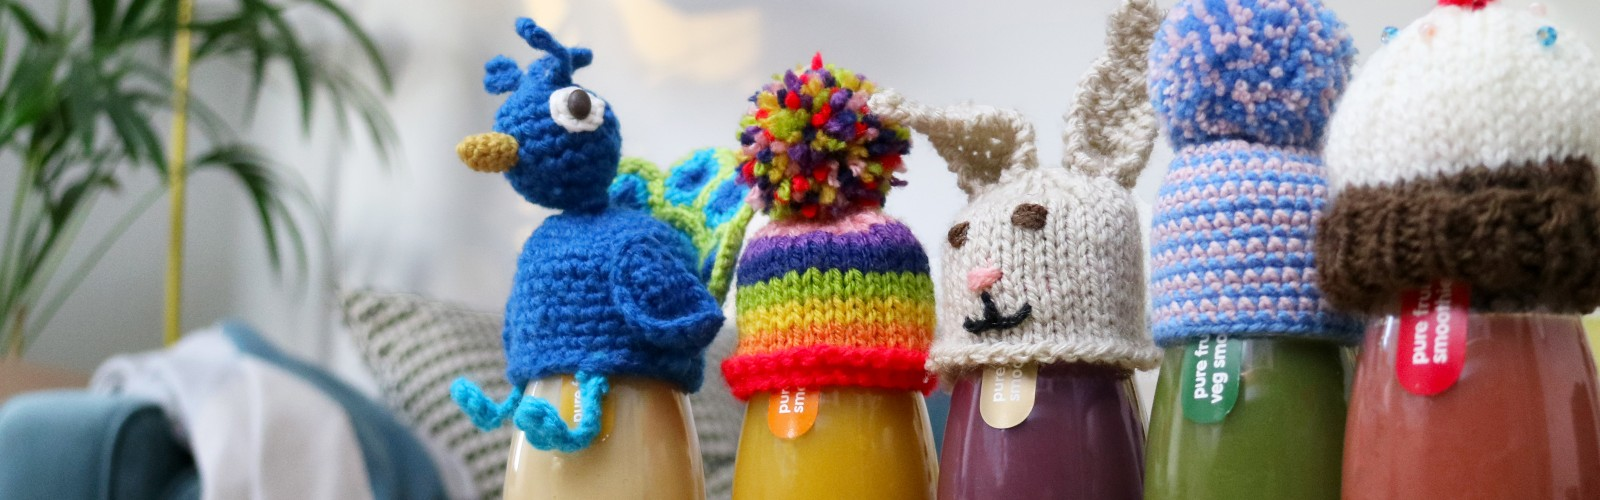 A collection of little hats on top of innocent smoothie bottles